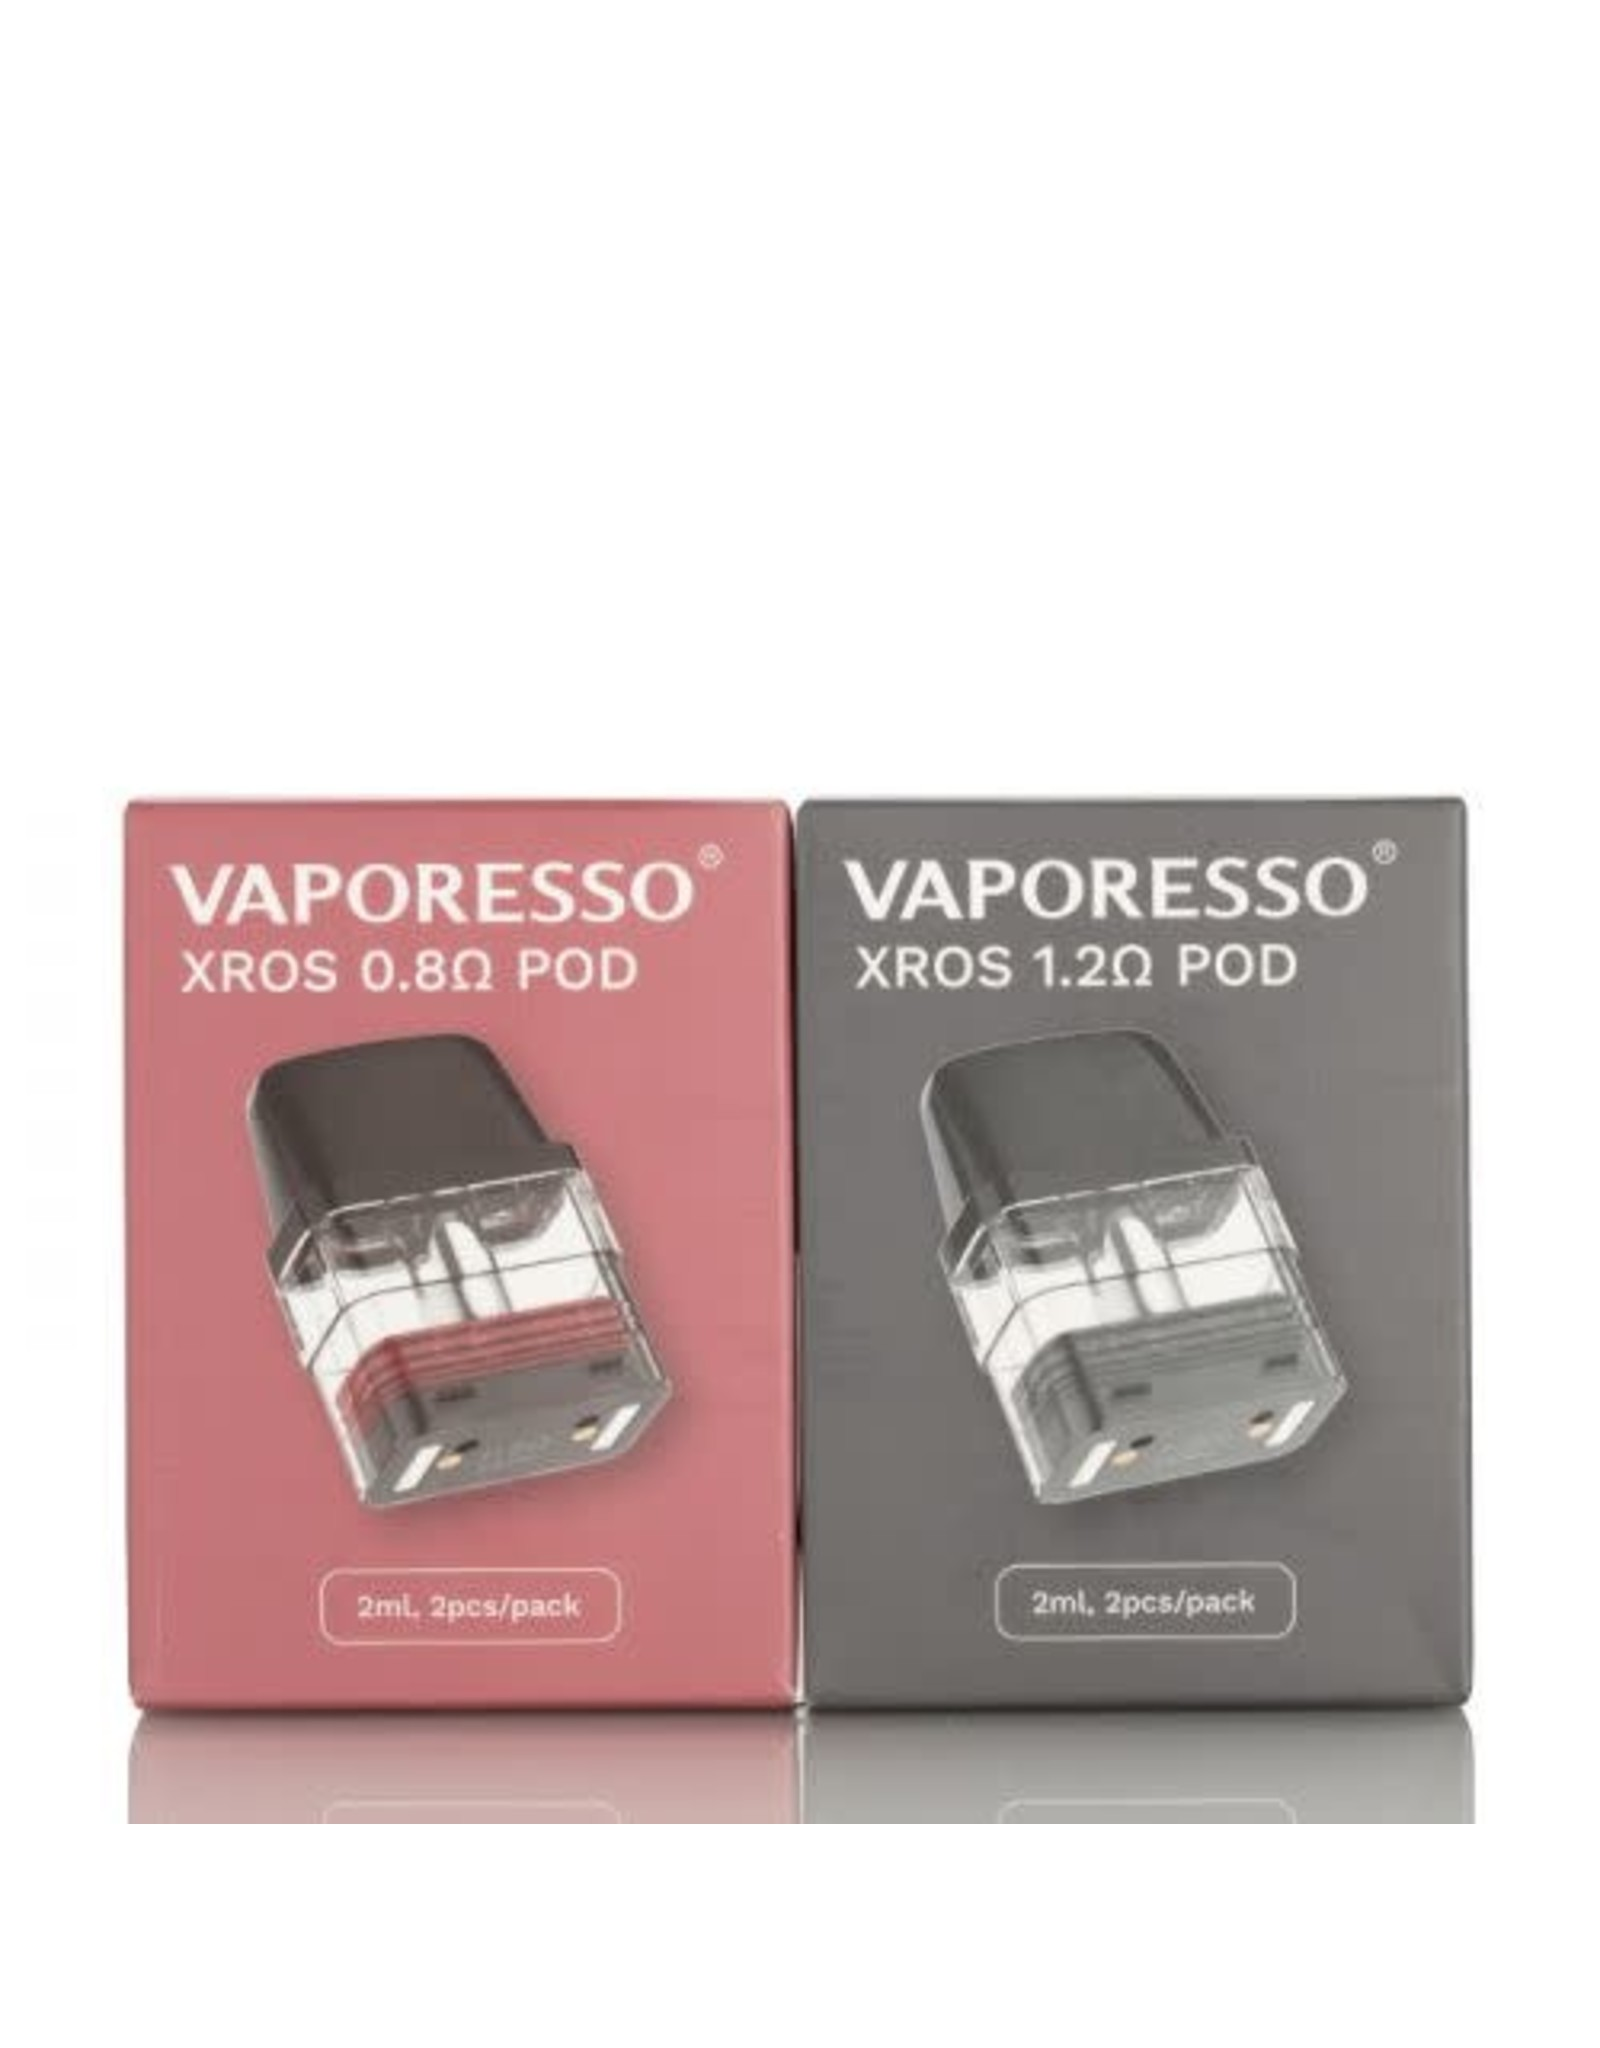 XROS replacement pods